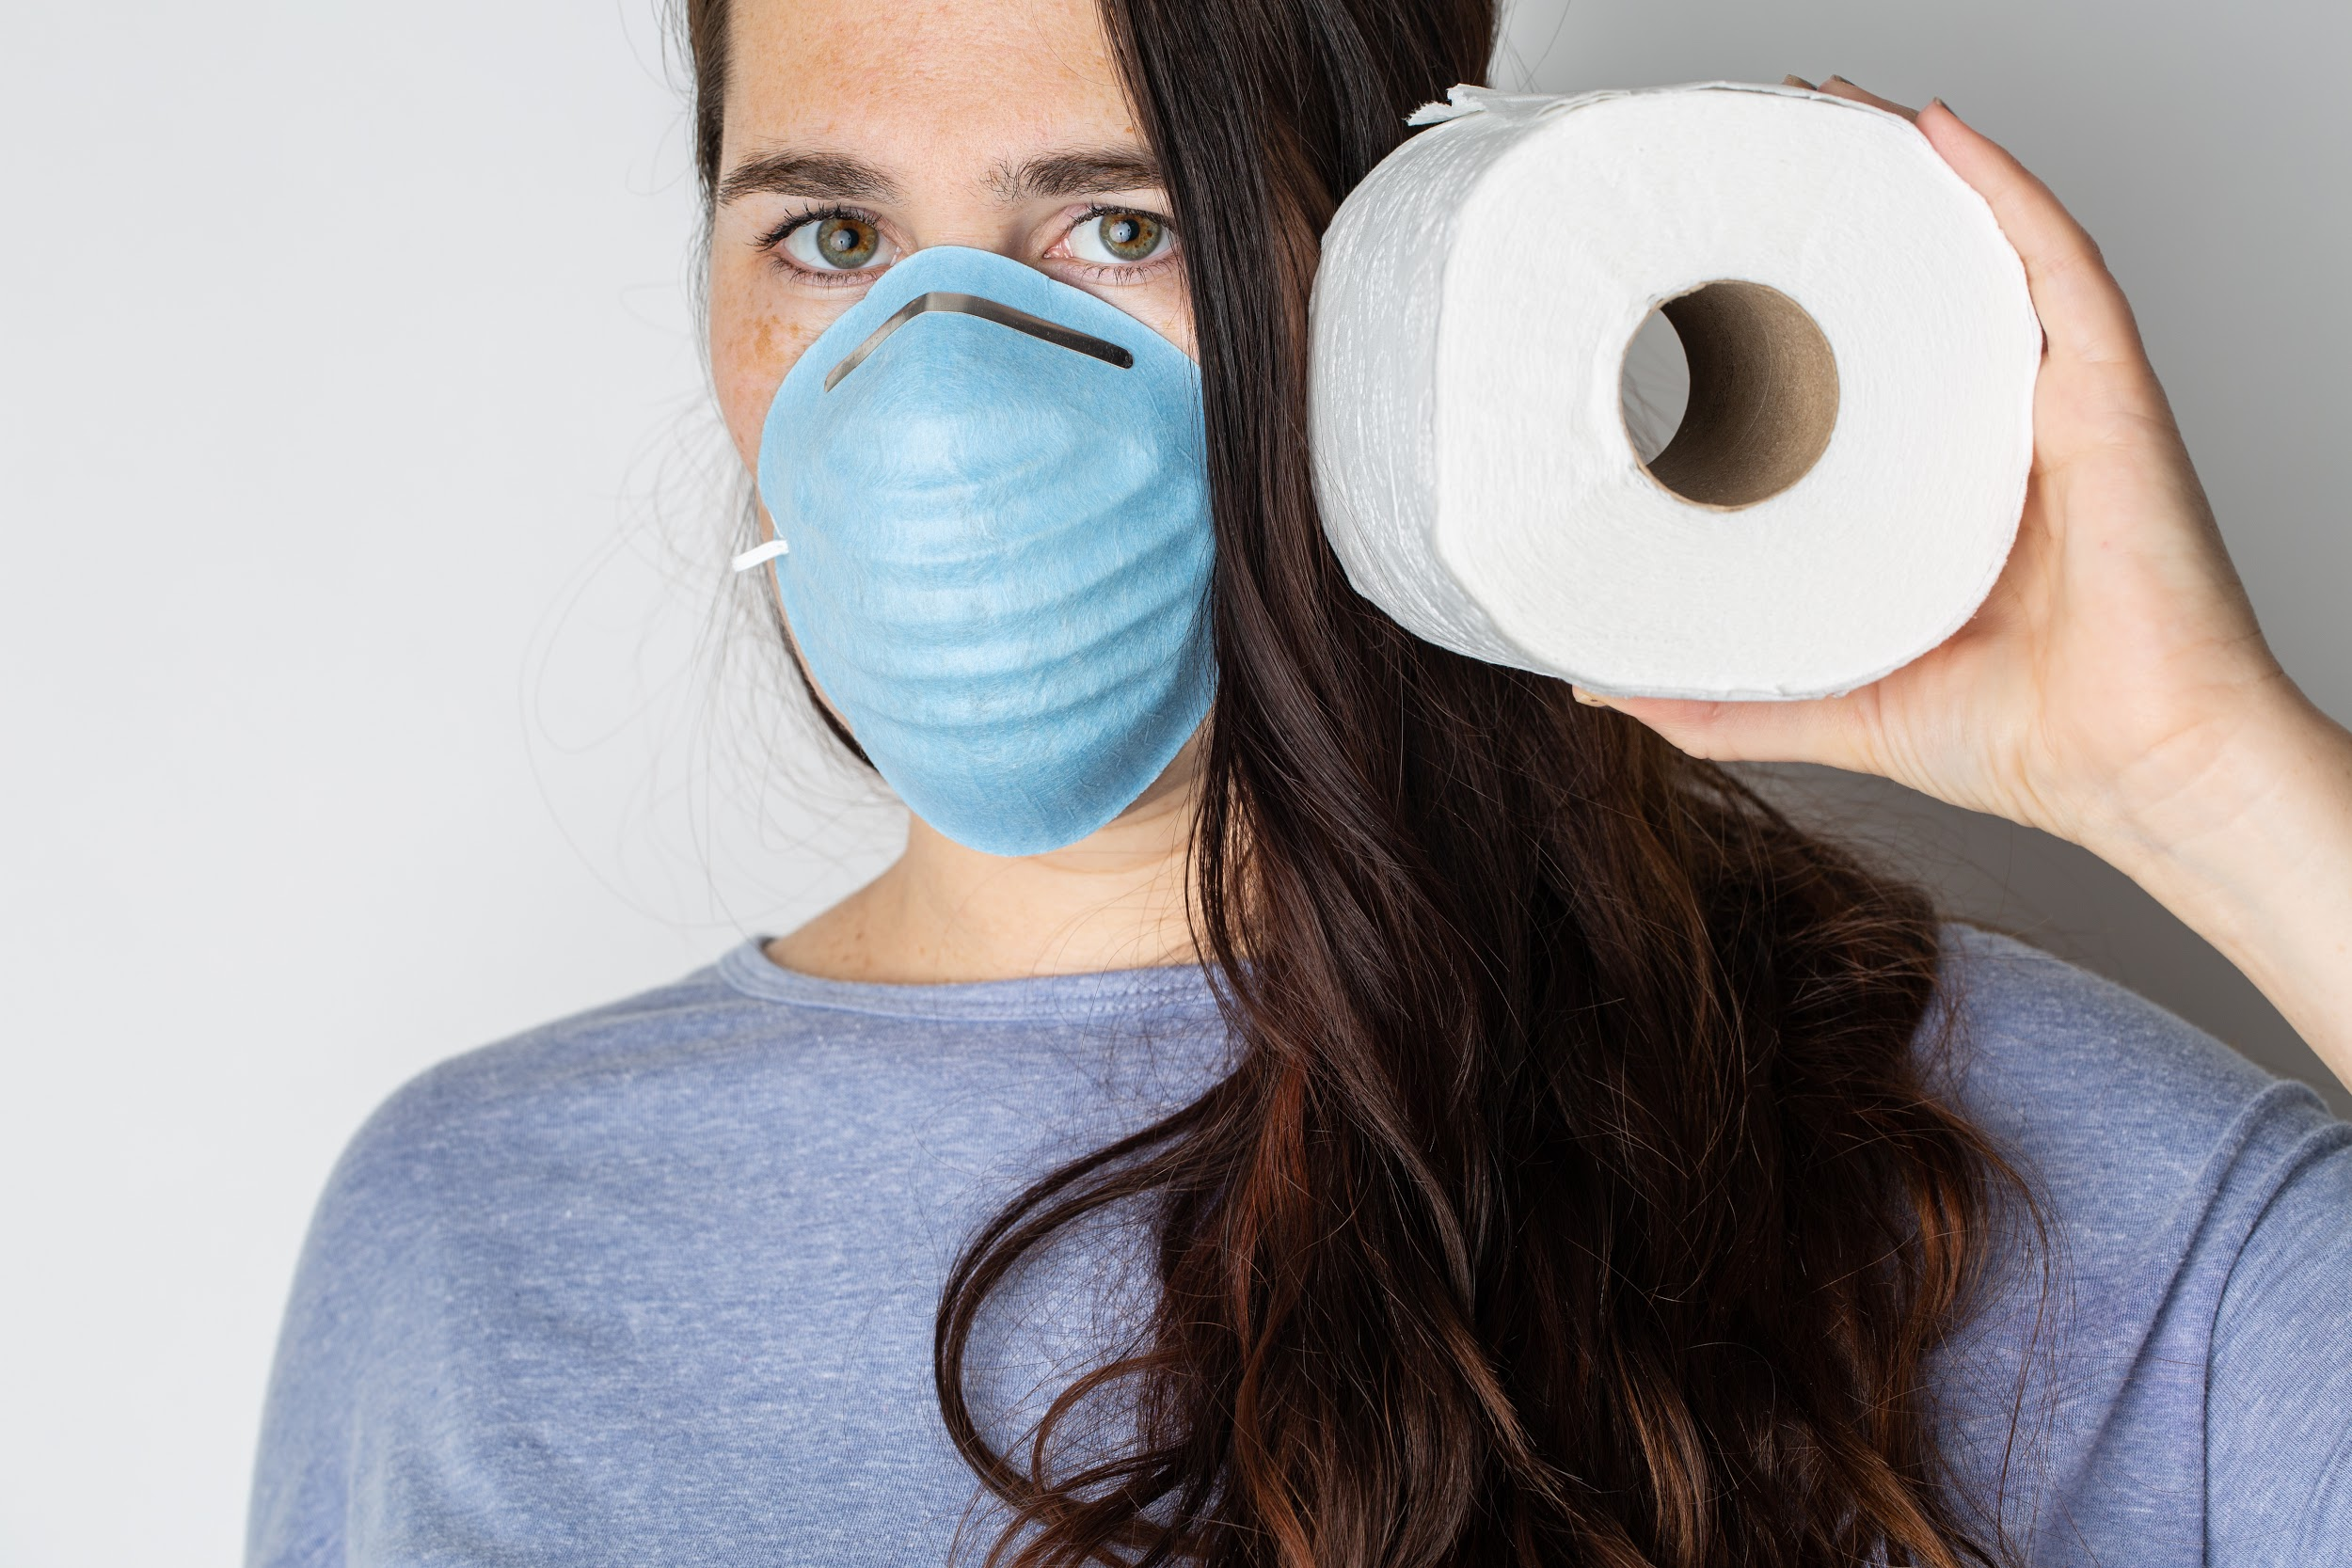 woman wearing a facemask and holding a roll of toilet paper